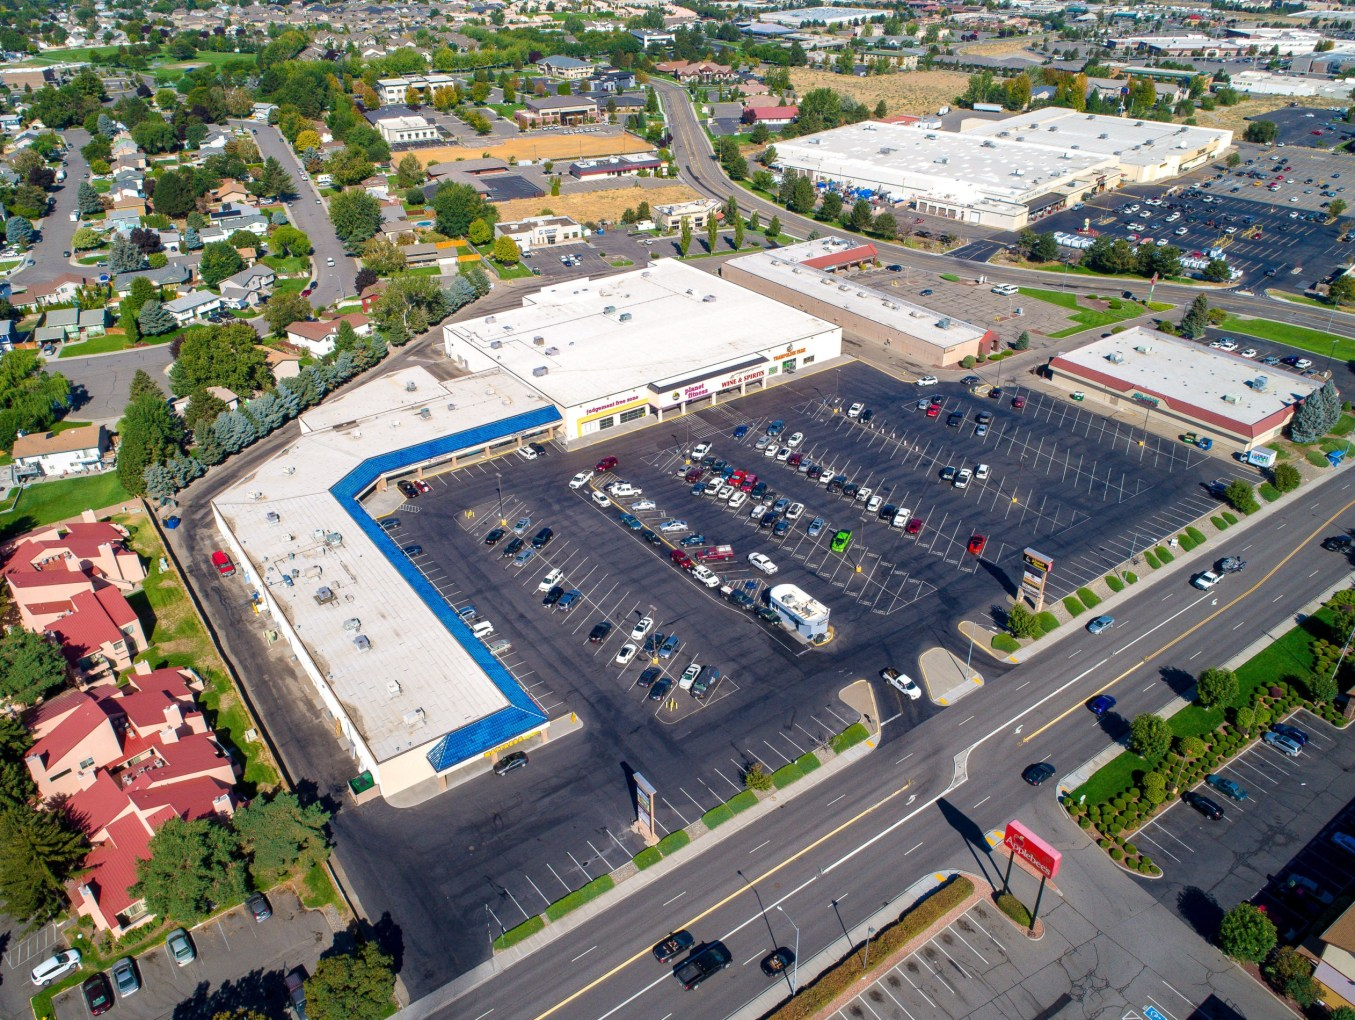 New Listing: Tri-Cities Retail Center with Pad Site